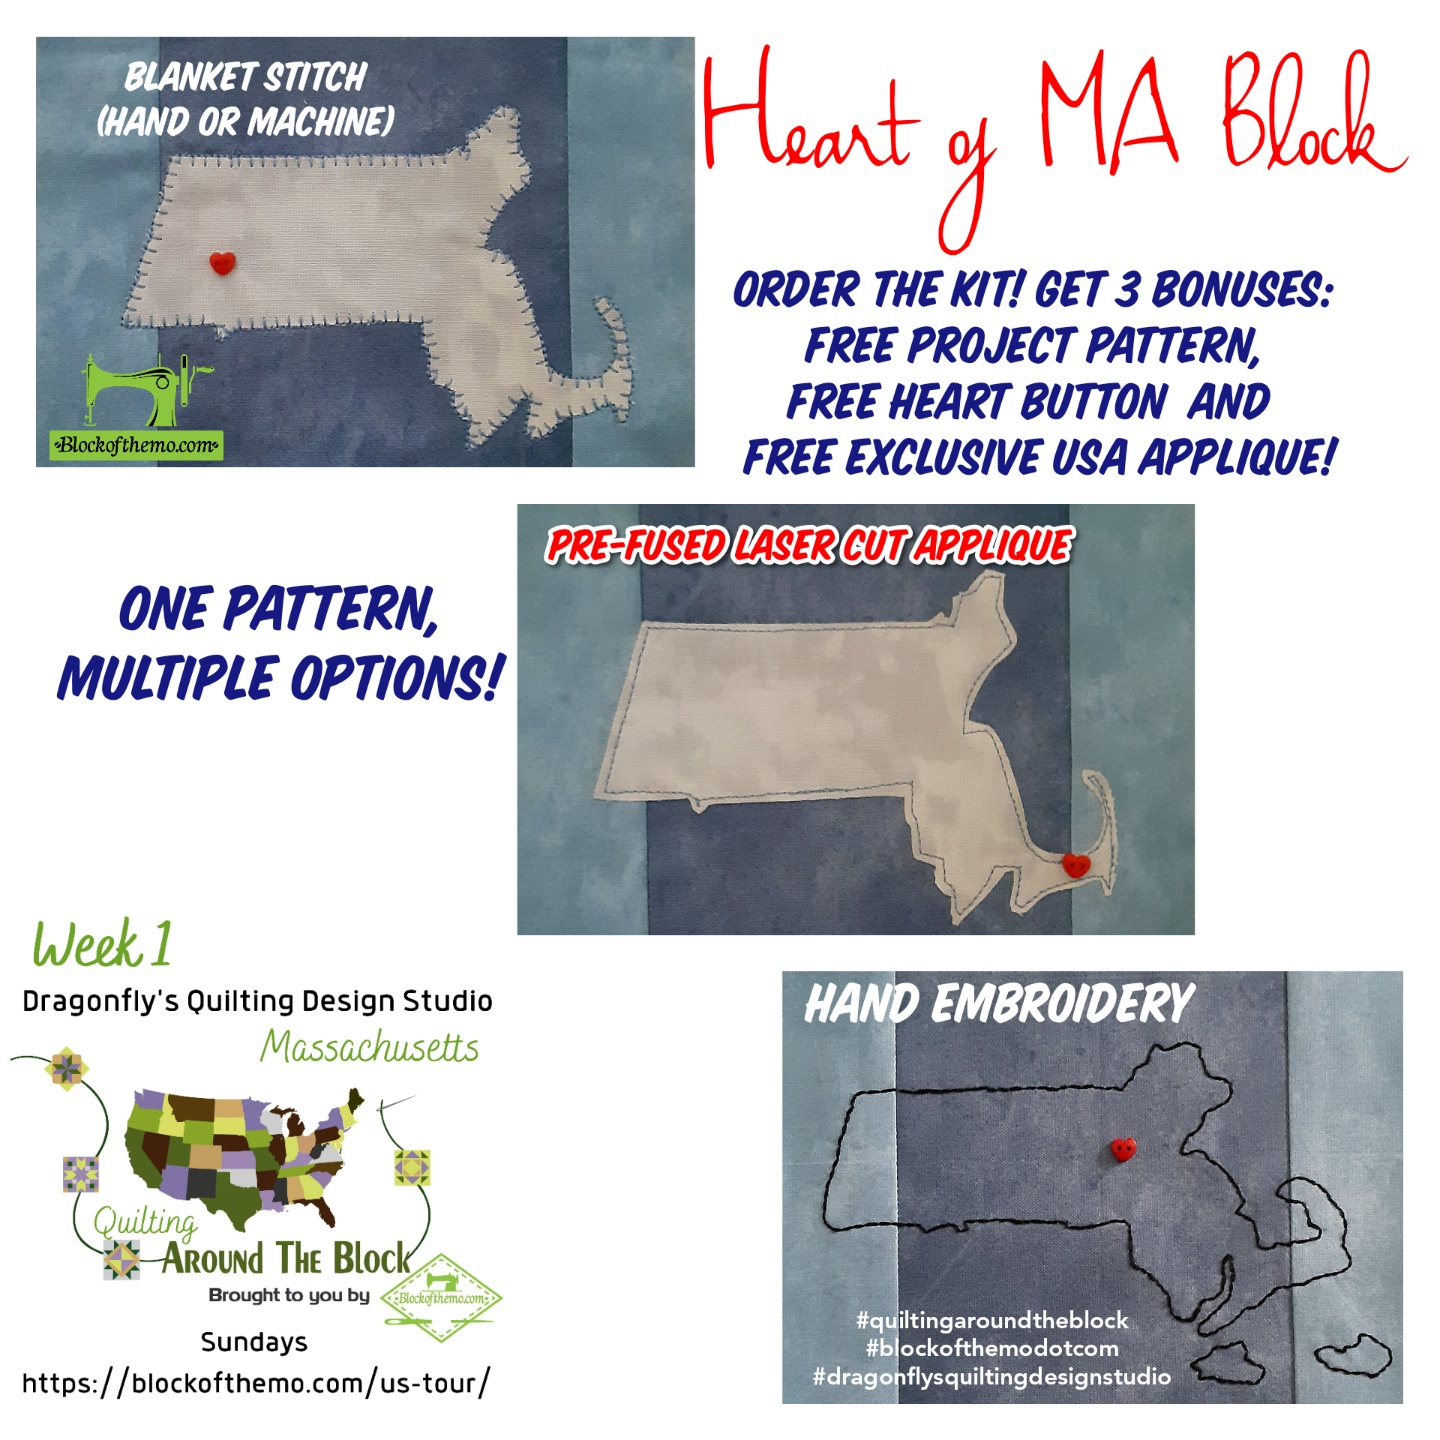 State of MA Kit - FREE SHIPPING!! (No bonuses)